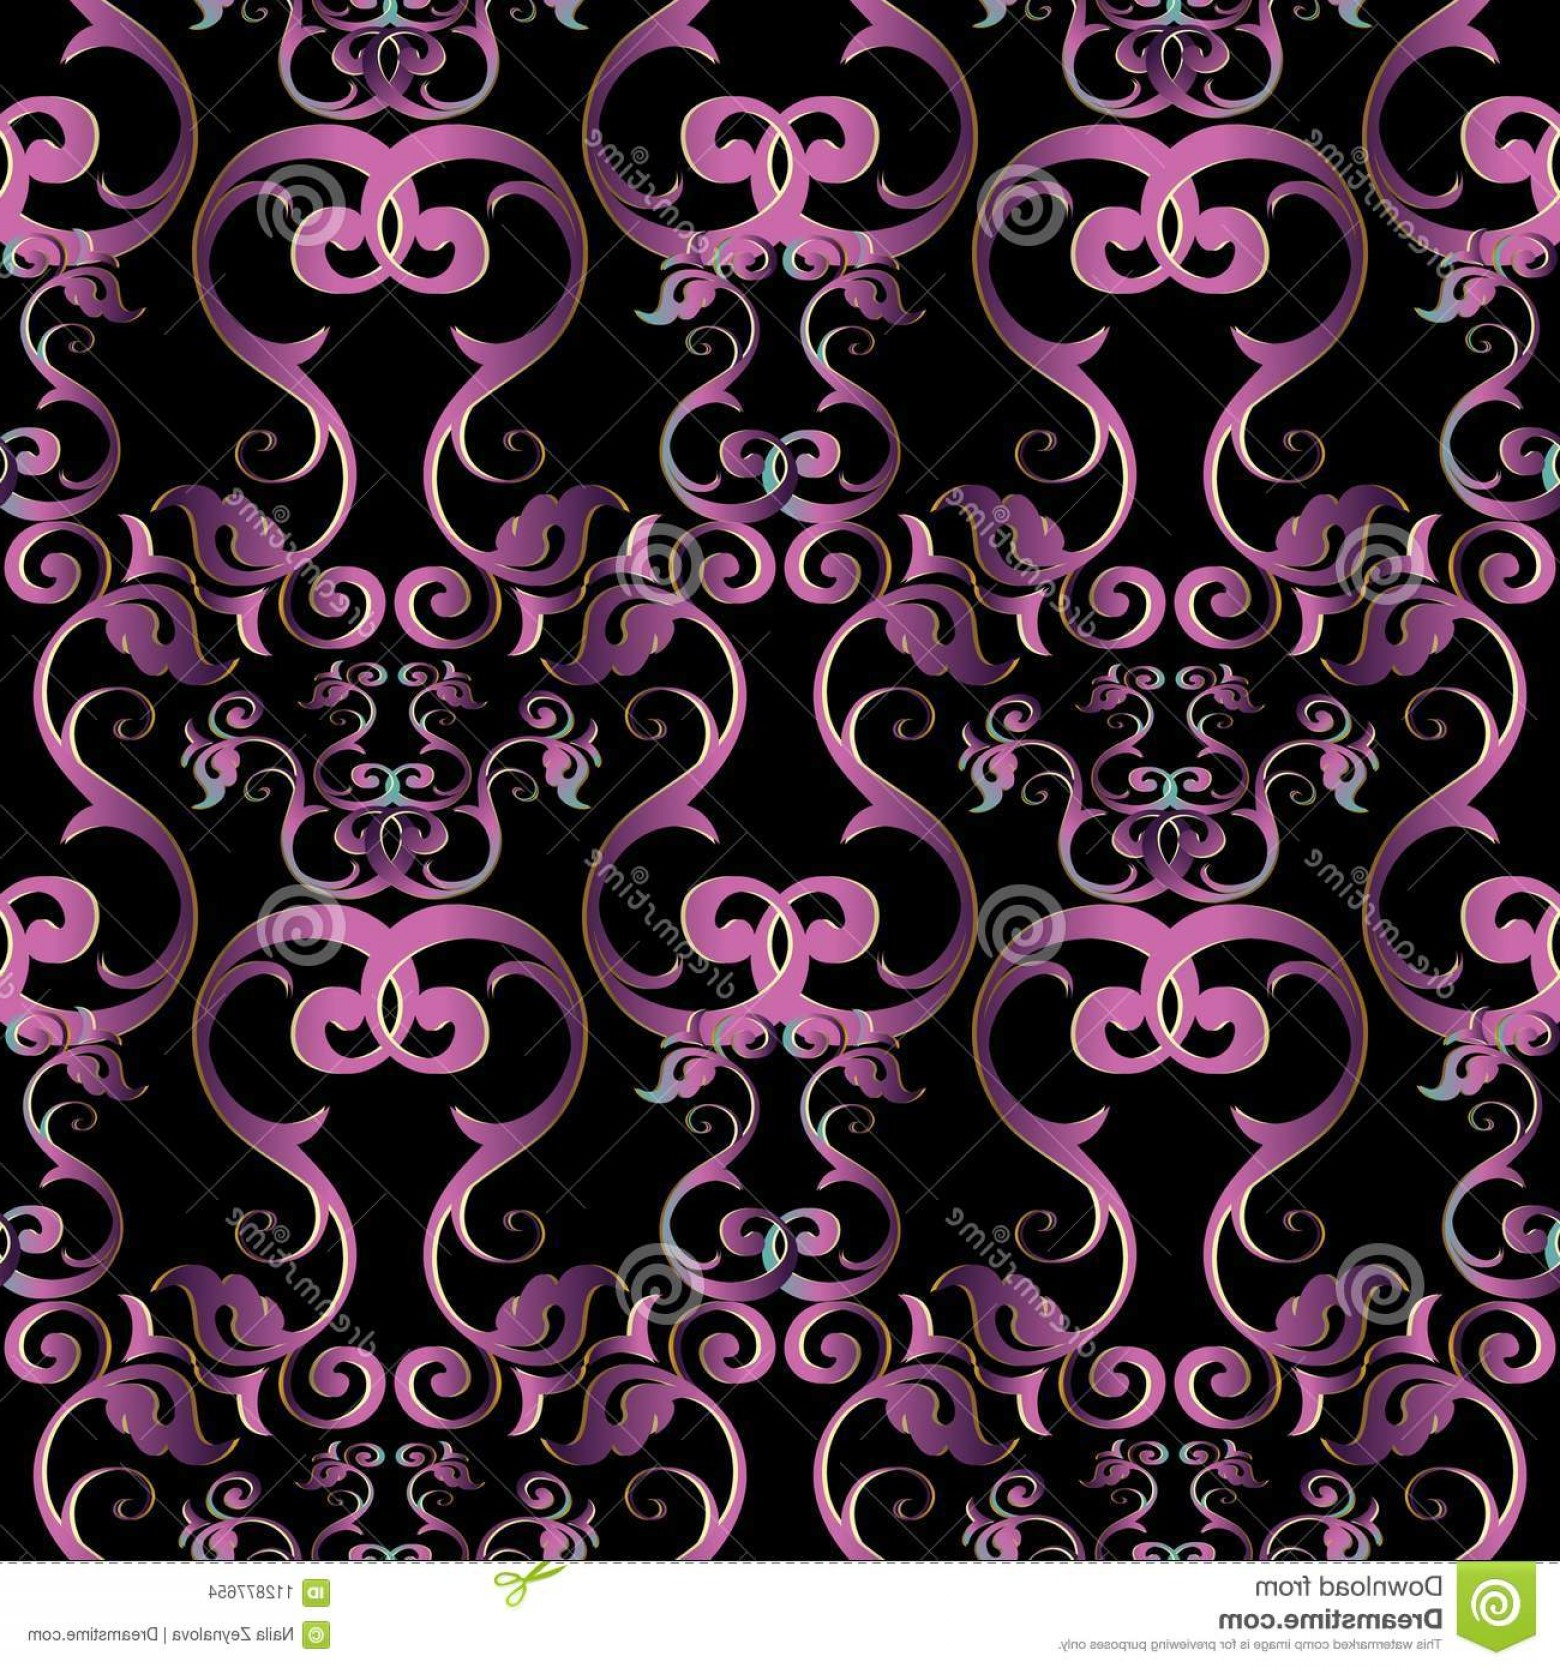 Violet Swirl Design Vector: Vintage Floral Damask Seamless Pattern Vector Black Background Violet Swirl Flowers Leaves Line Art Tracery Antique Ornaments Image